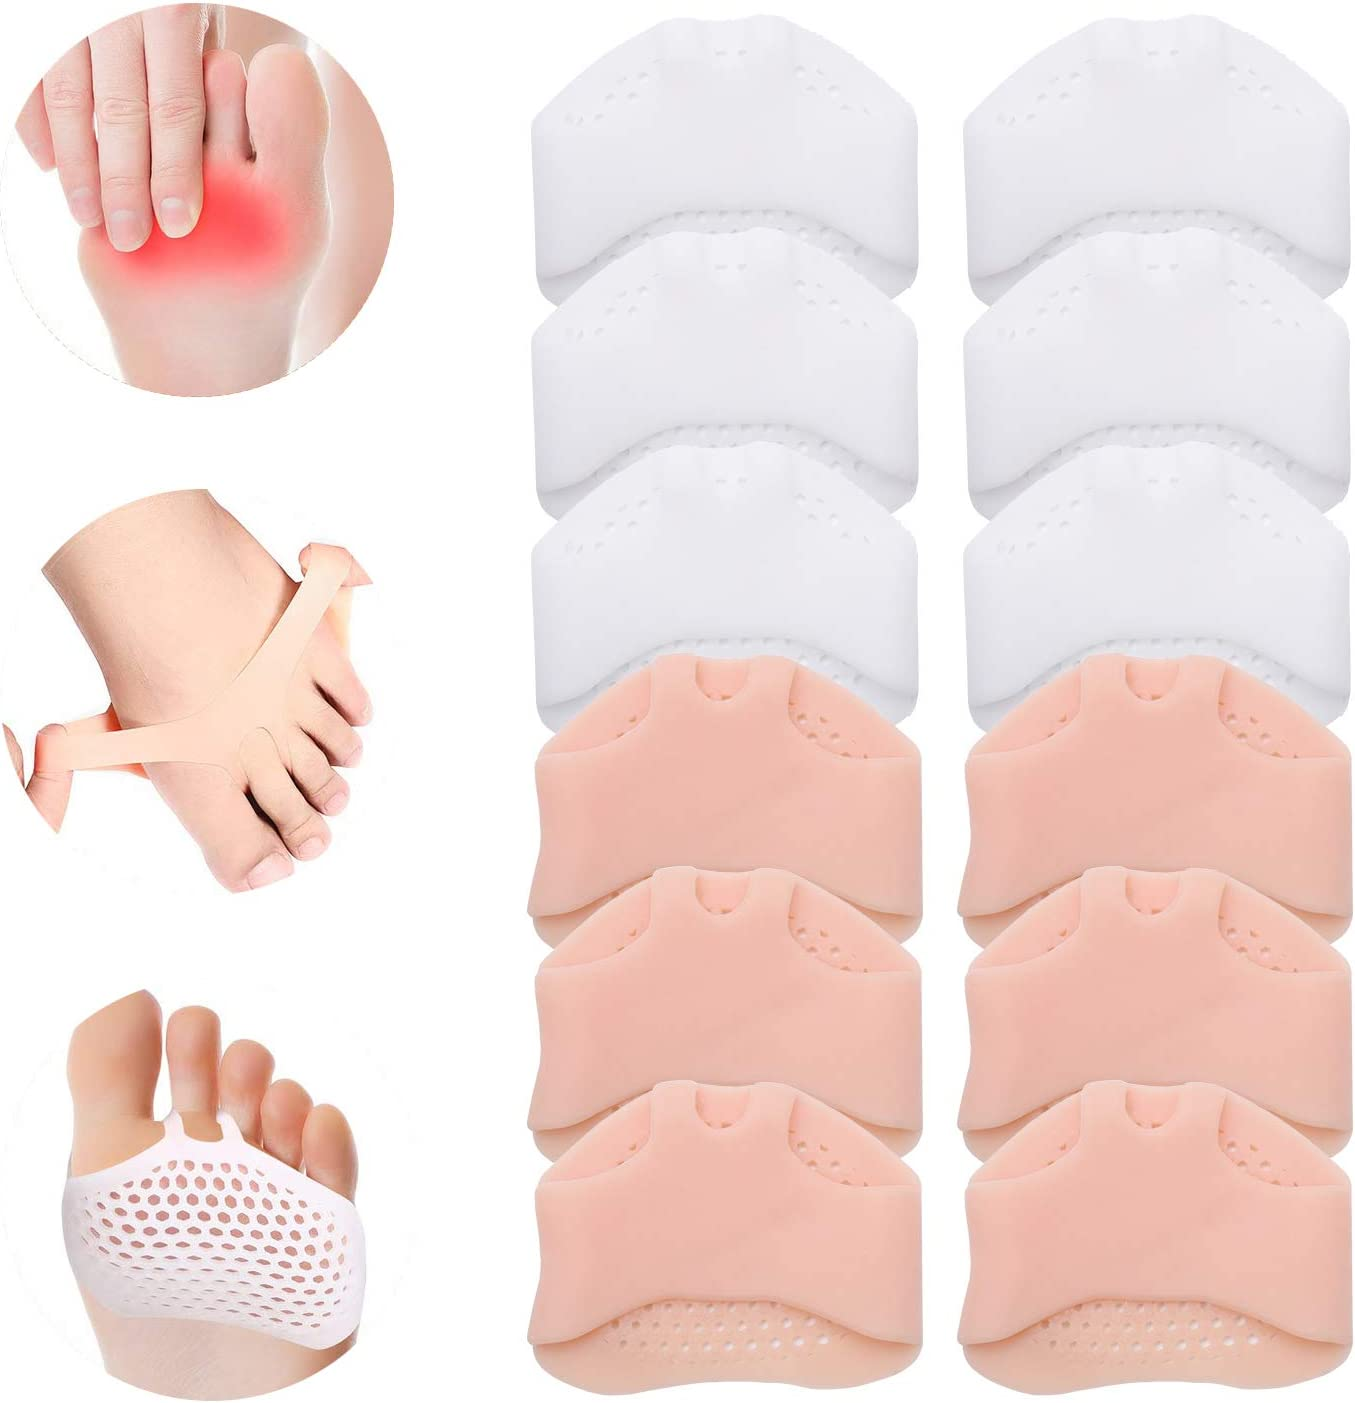 SooGree Metatarsal Pads(6 Pairs), Breathable & Soft Gel Cushion Pads for Men Women Ball of Foot Cushions for Runners, High Heels, Dancers, Morton's Neuroma, Prevent Pain and Discomfort